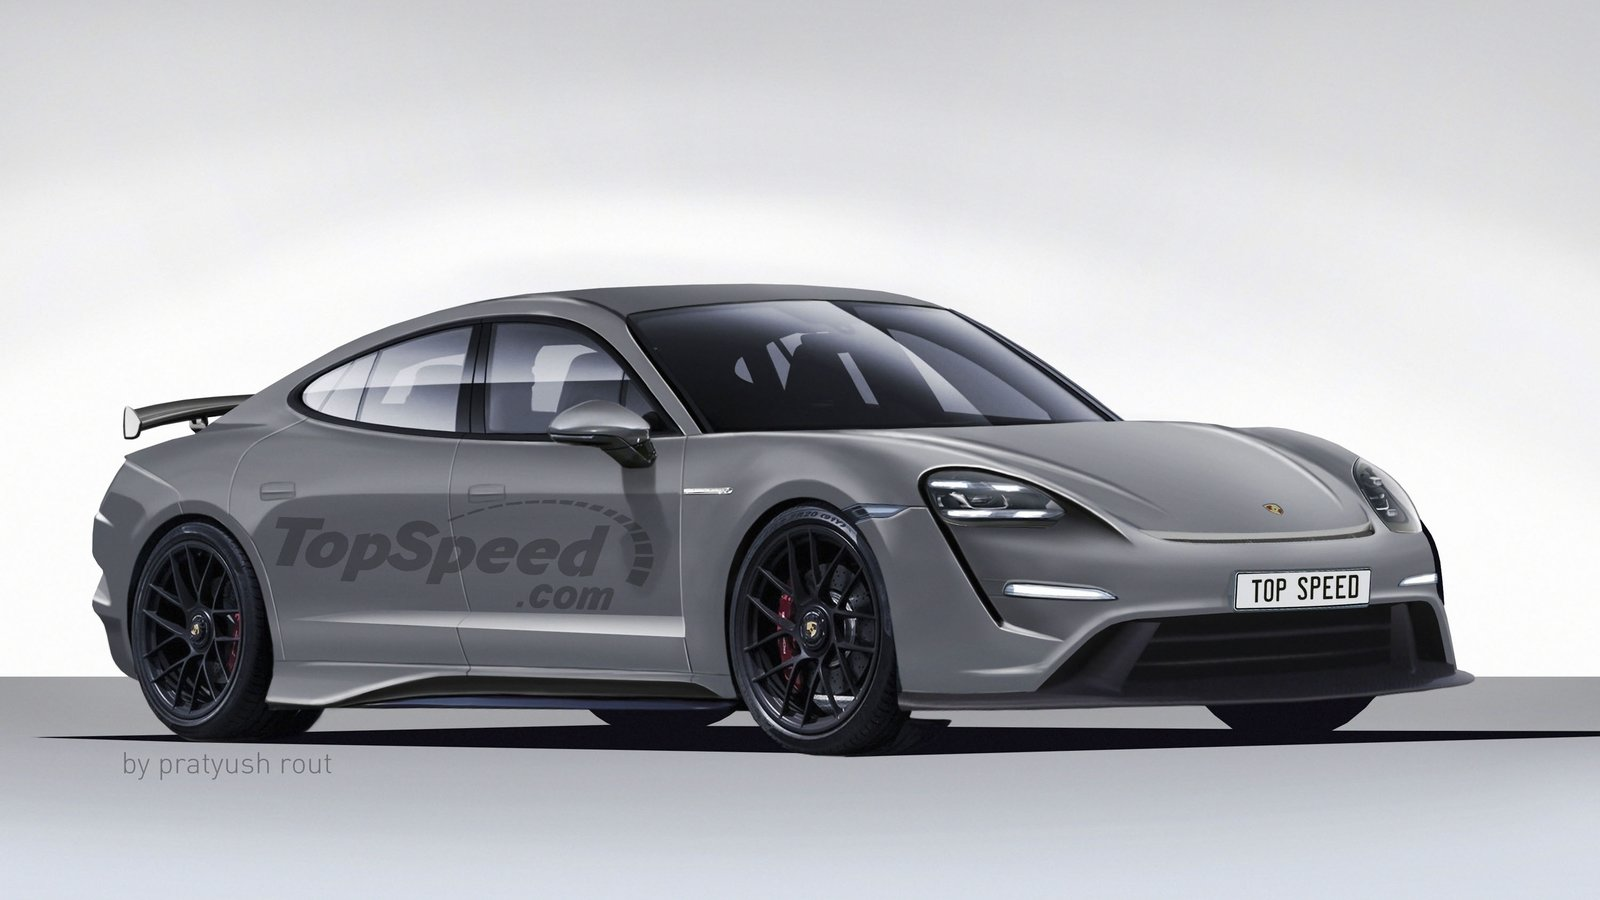 2021 Porsche Mission E Gts Review Top Speed